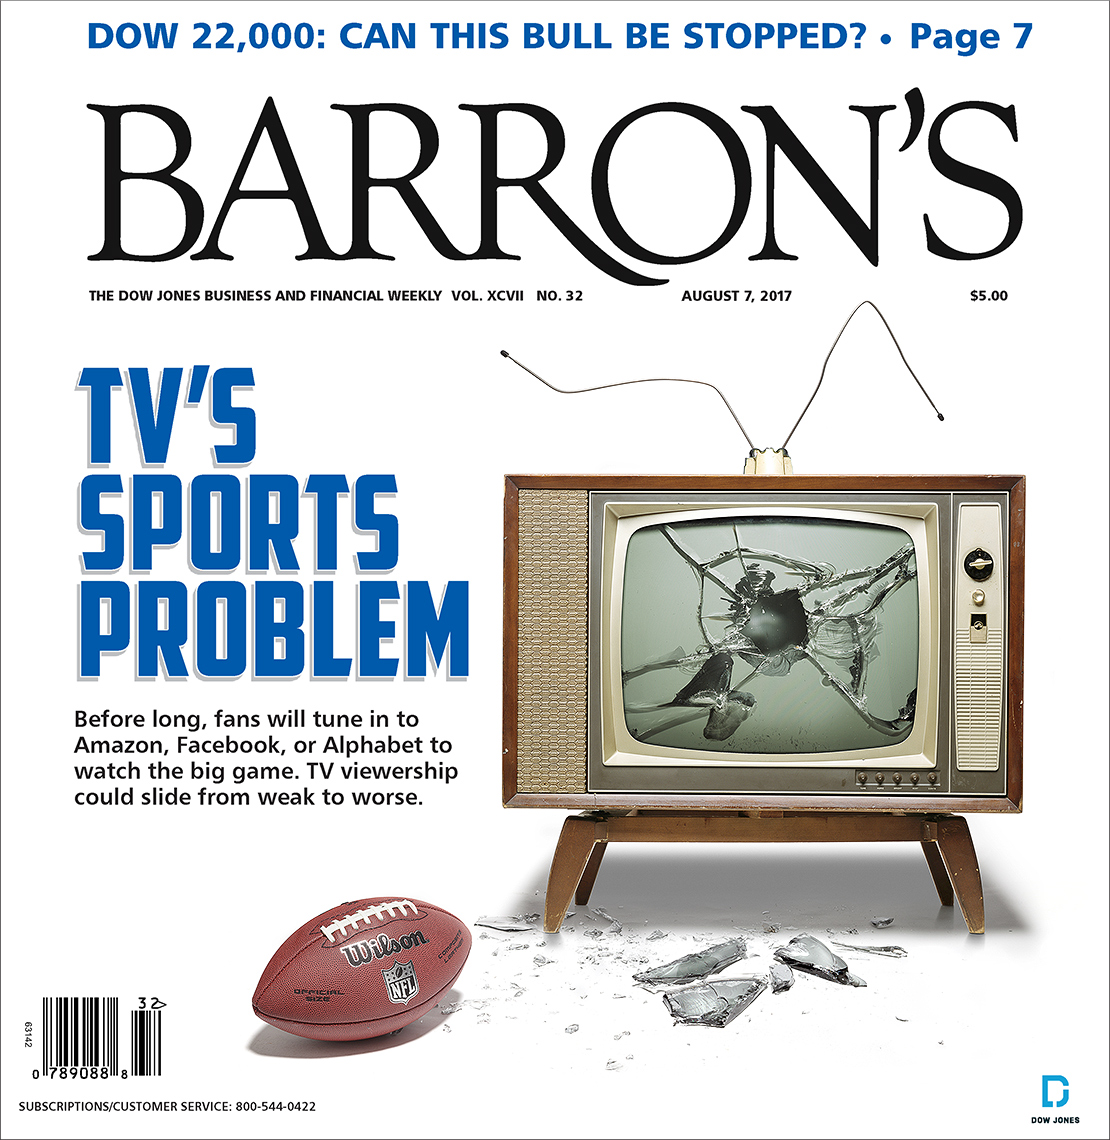 Sports on television photo-illustration by John Kuczala